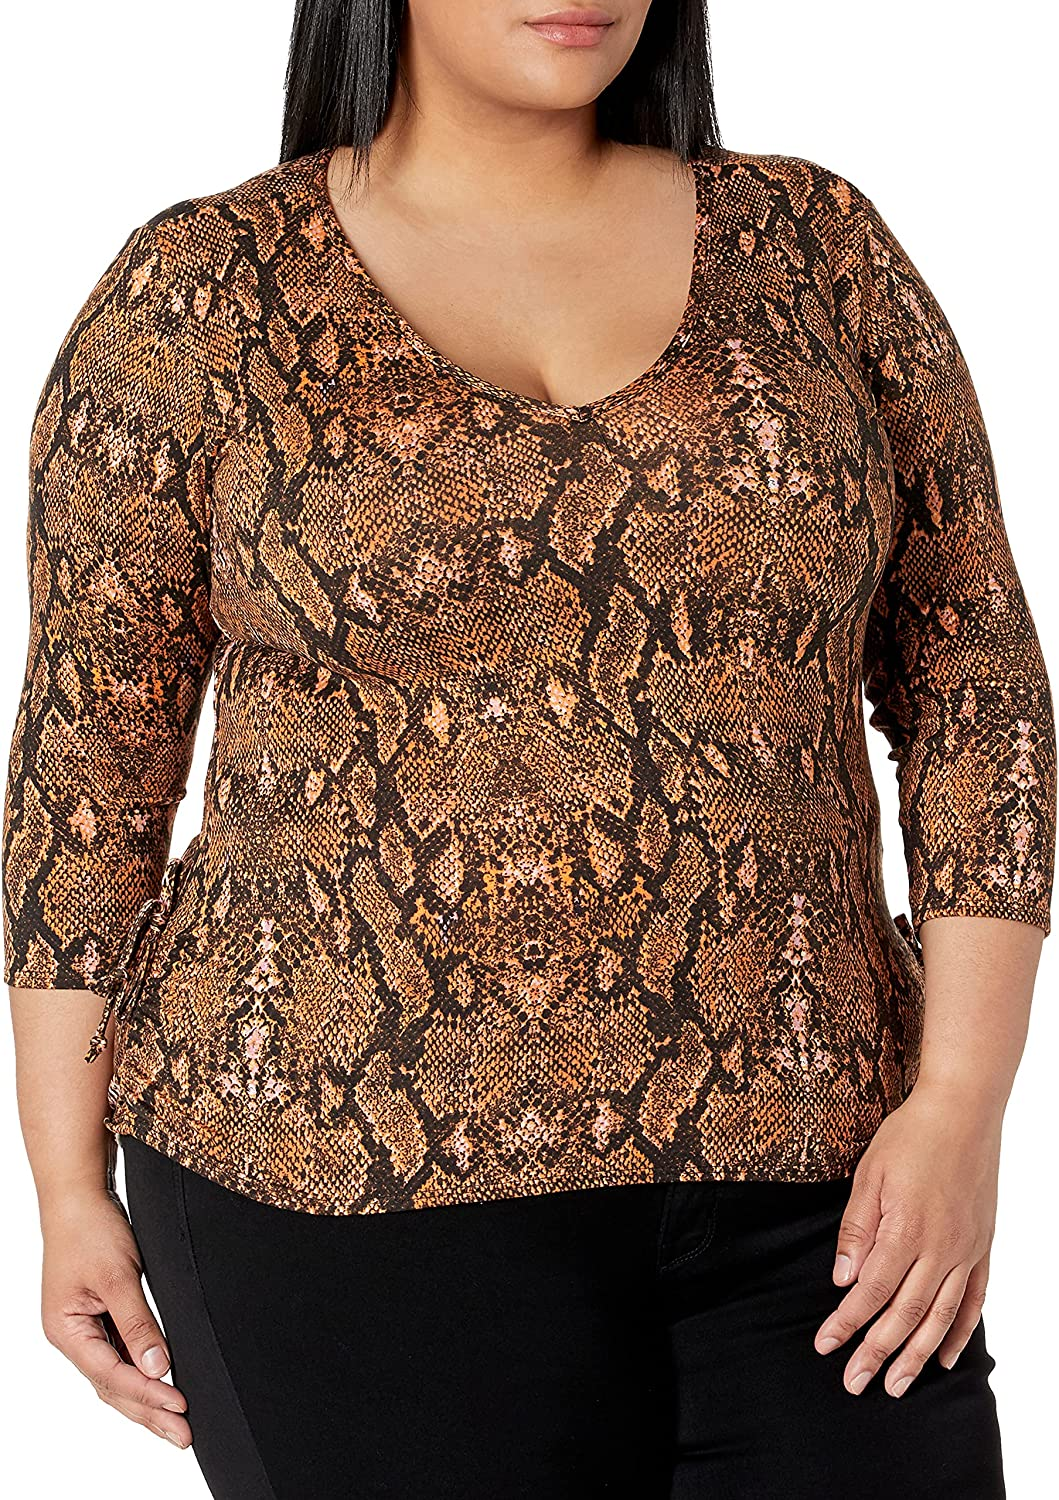 Star Vixen Women's 3/4 Sleeve V Neck Top with Ruched Side Detail